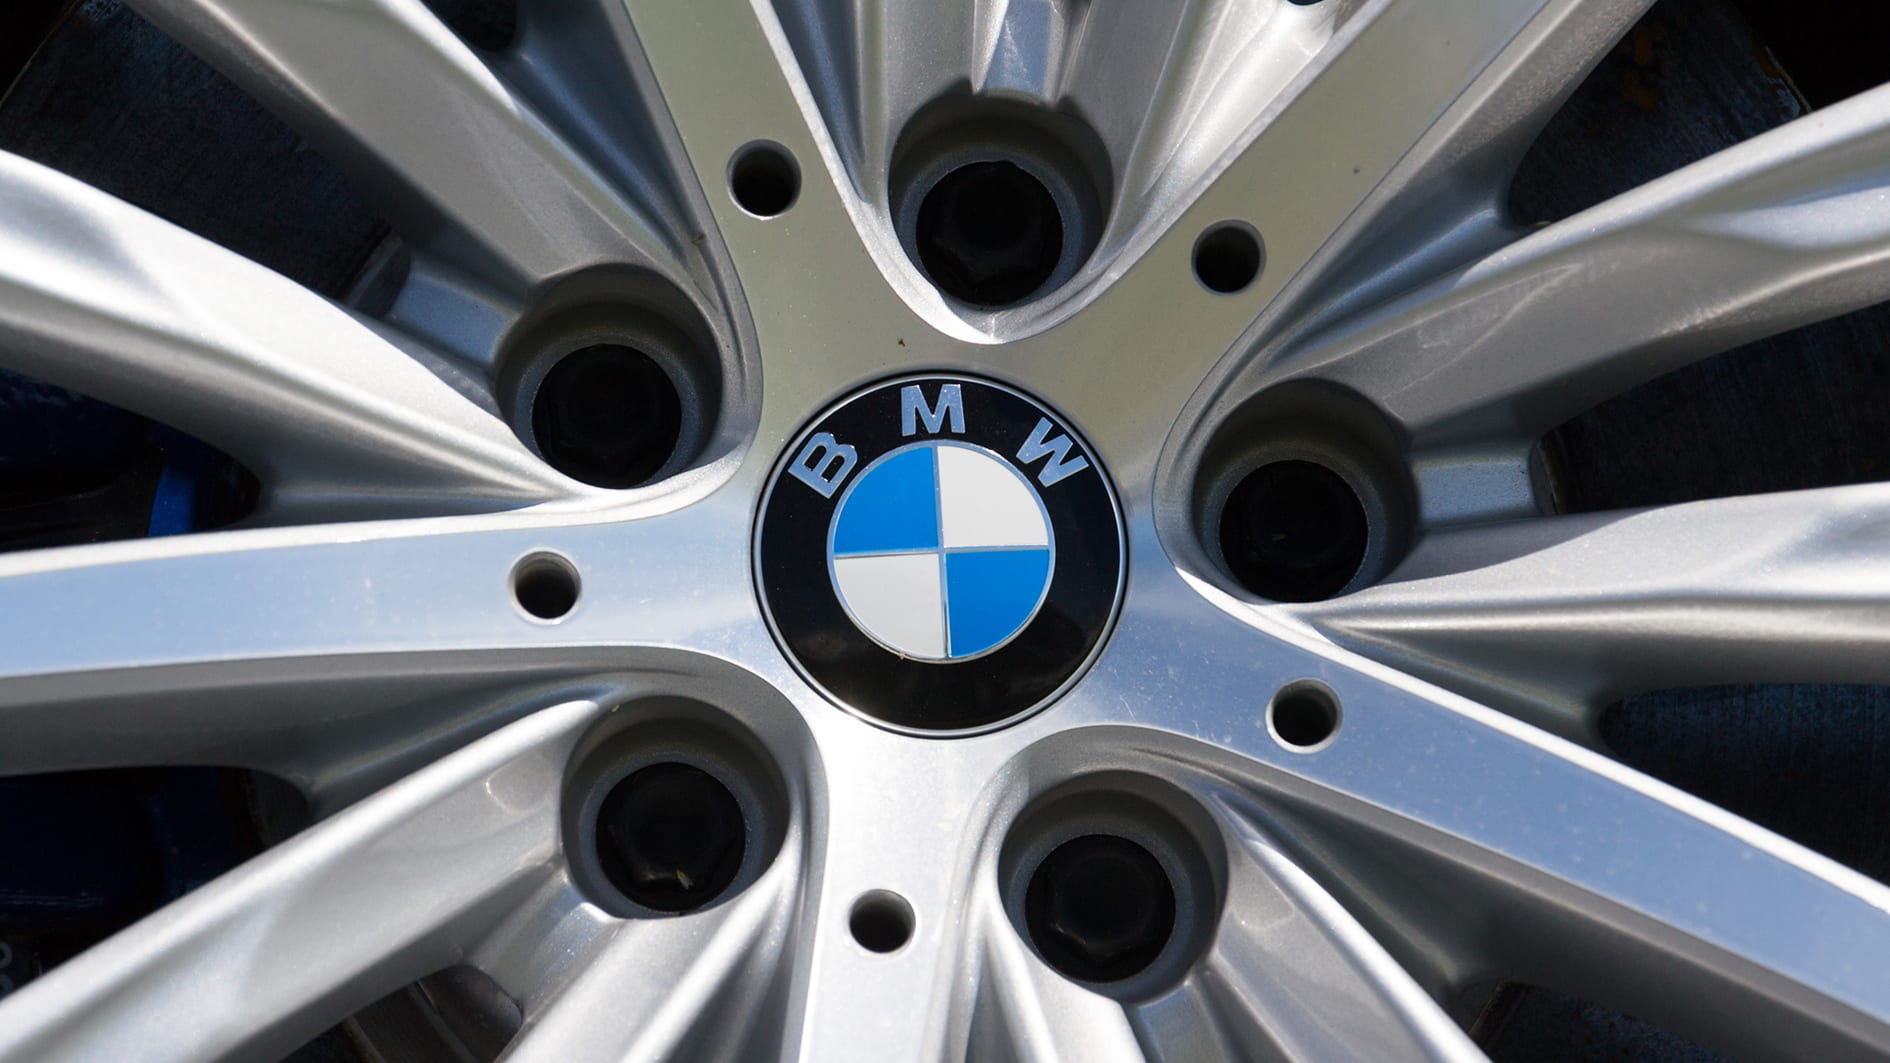 Bmw S New Logo Designed To Future Proof The Brand Caradvice